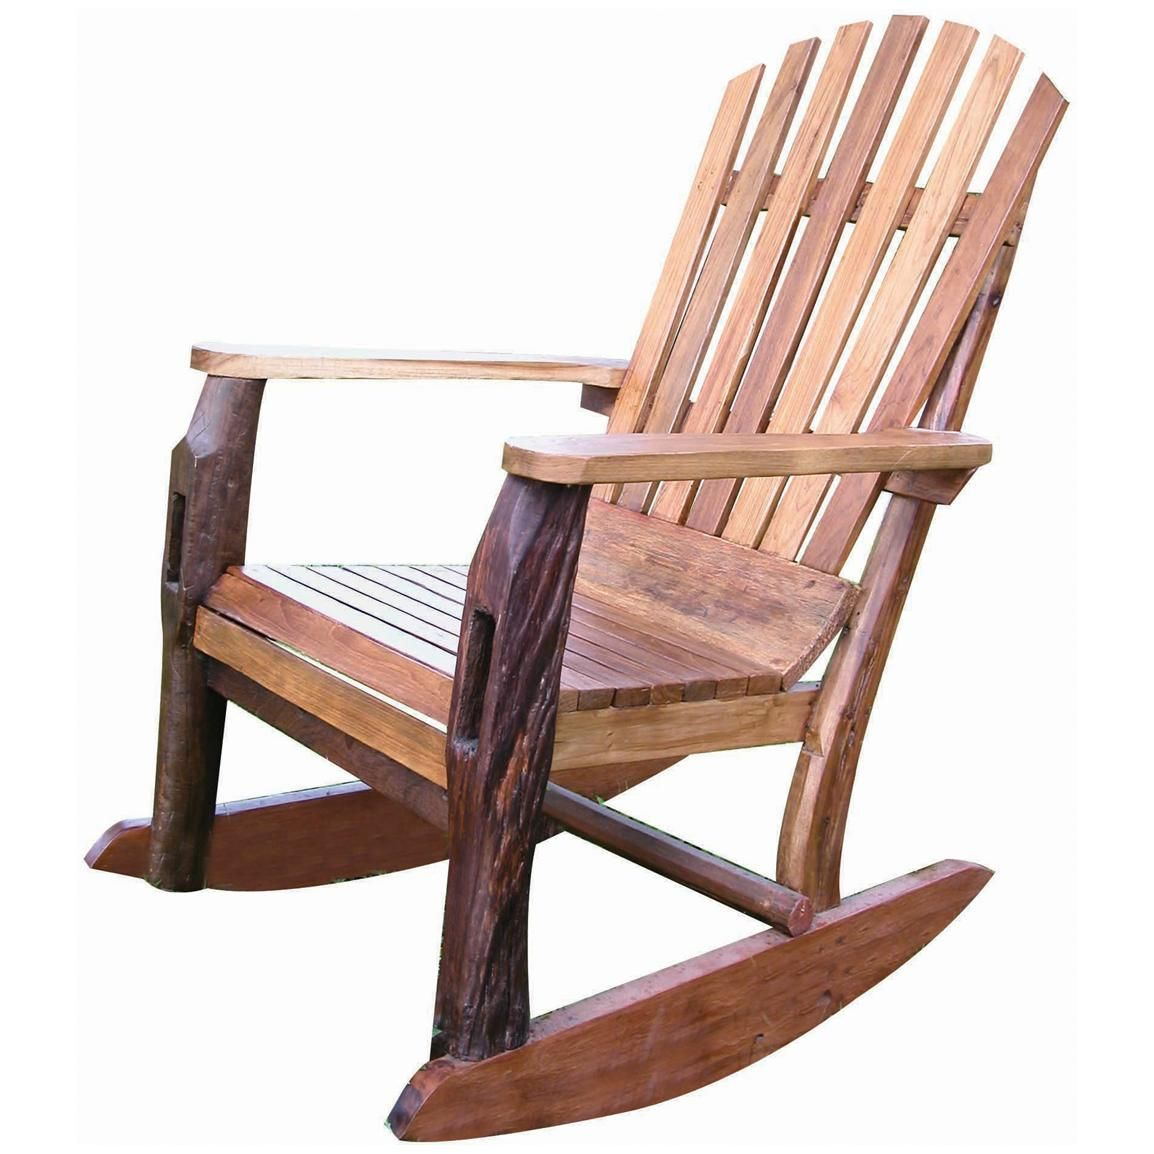 Adirondack Rocking Chair Plans The Beauty Of Recycled